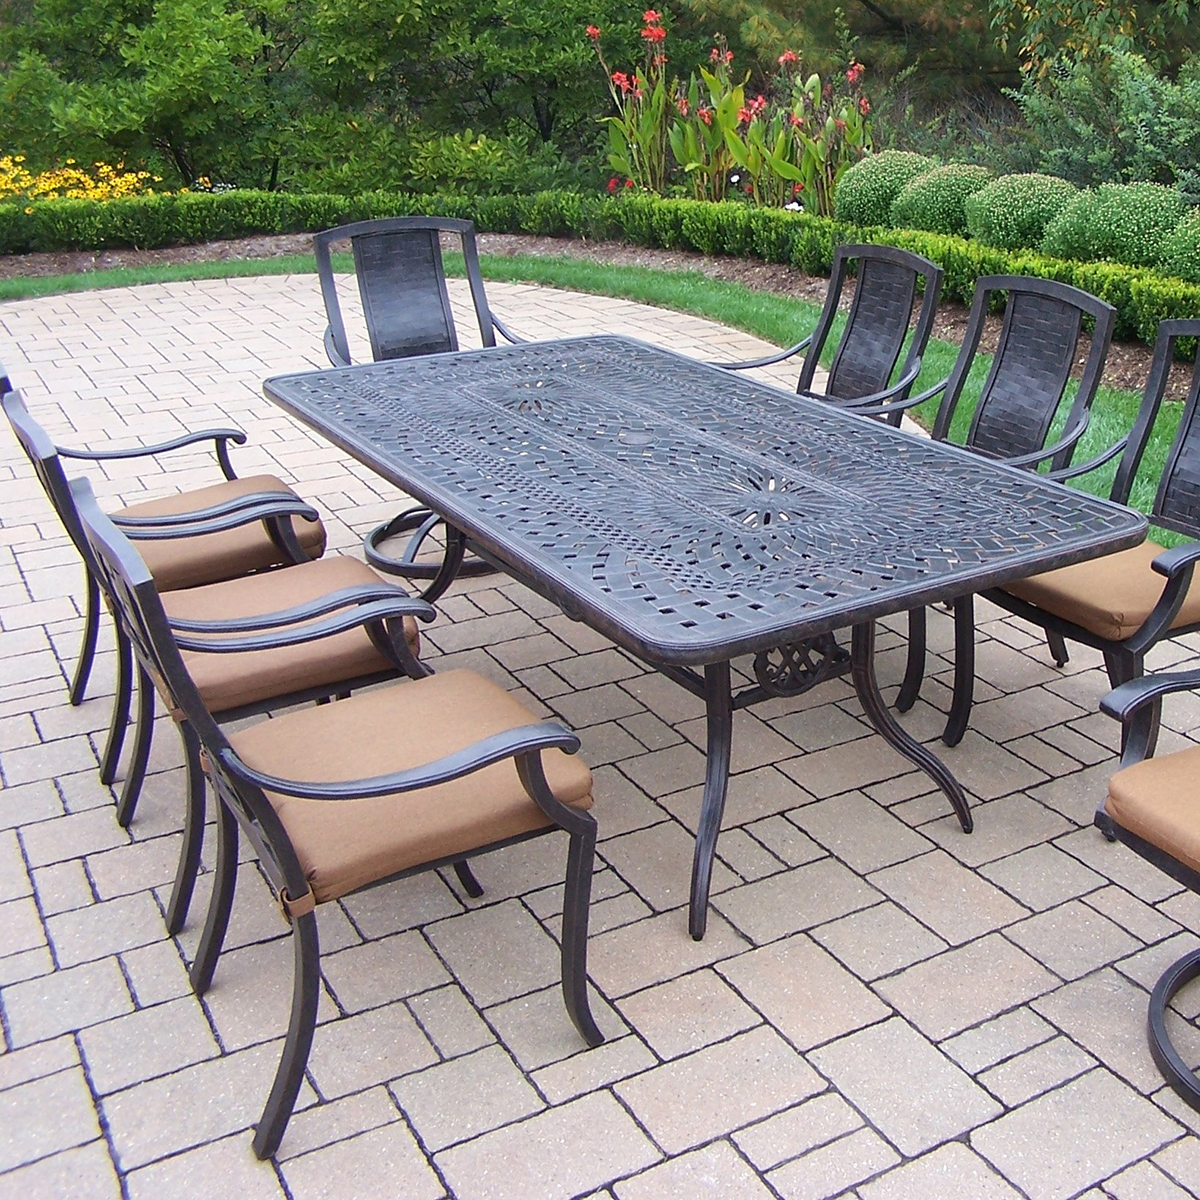 cubo table free set overstock patio outdoor home garden piece dining wicker today product shipping